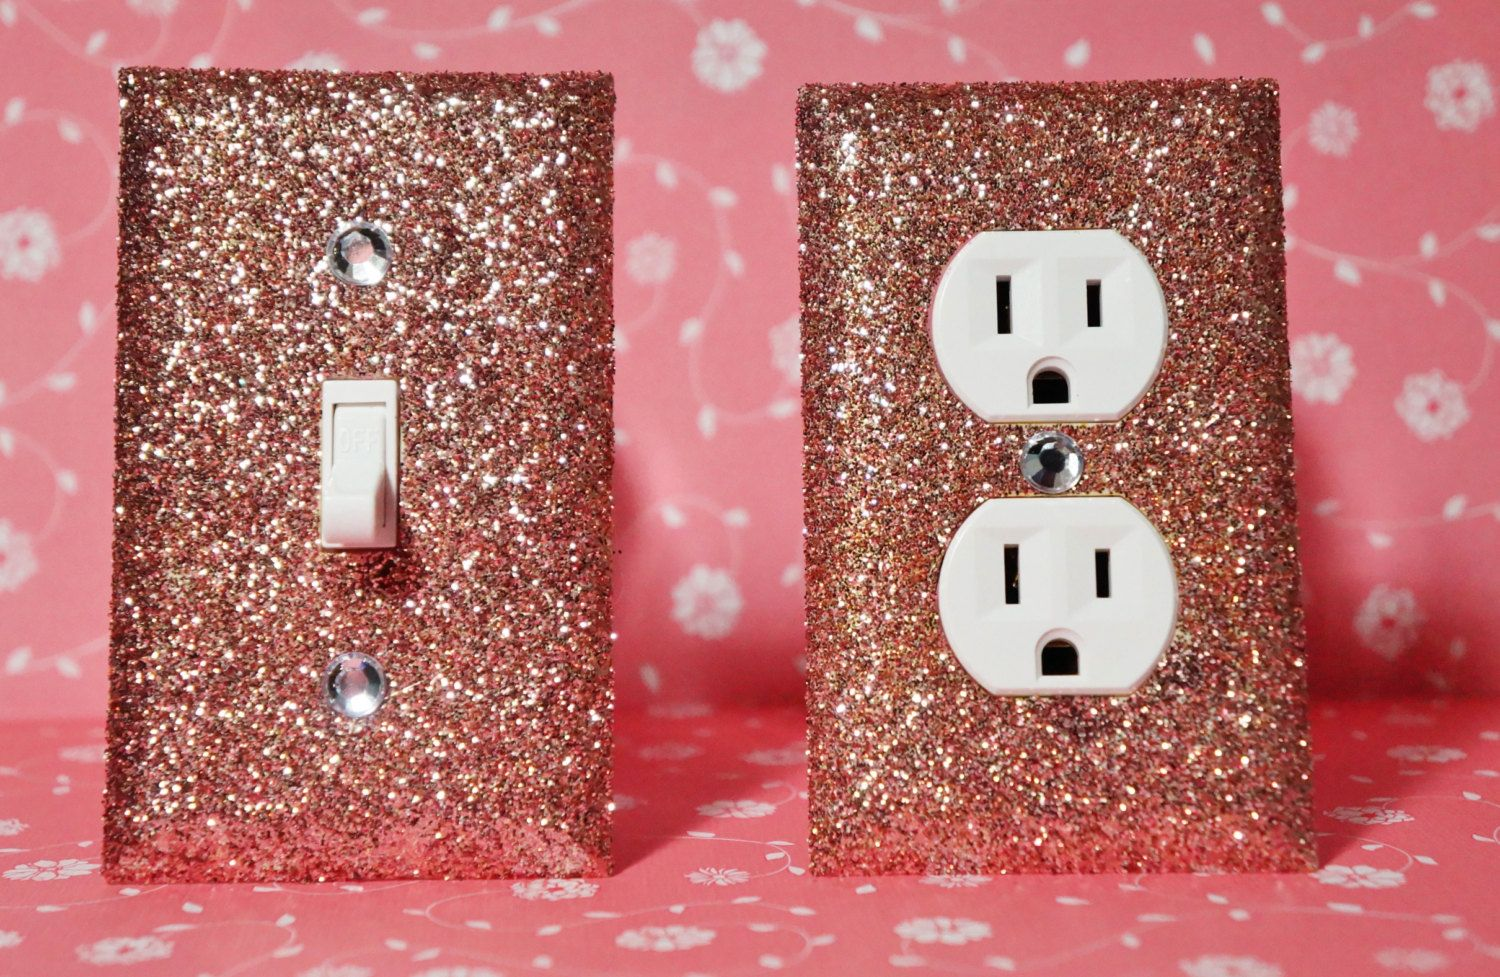 Set of rose gold glitter swichplate outlet covers by glitteritmine